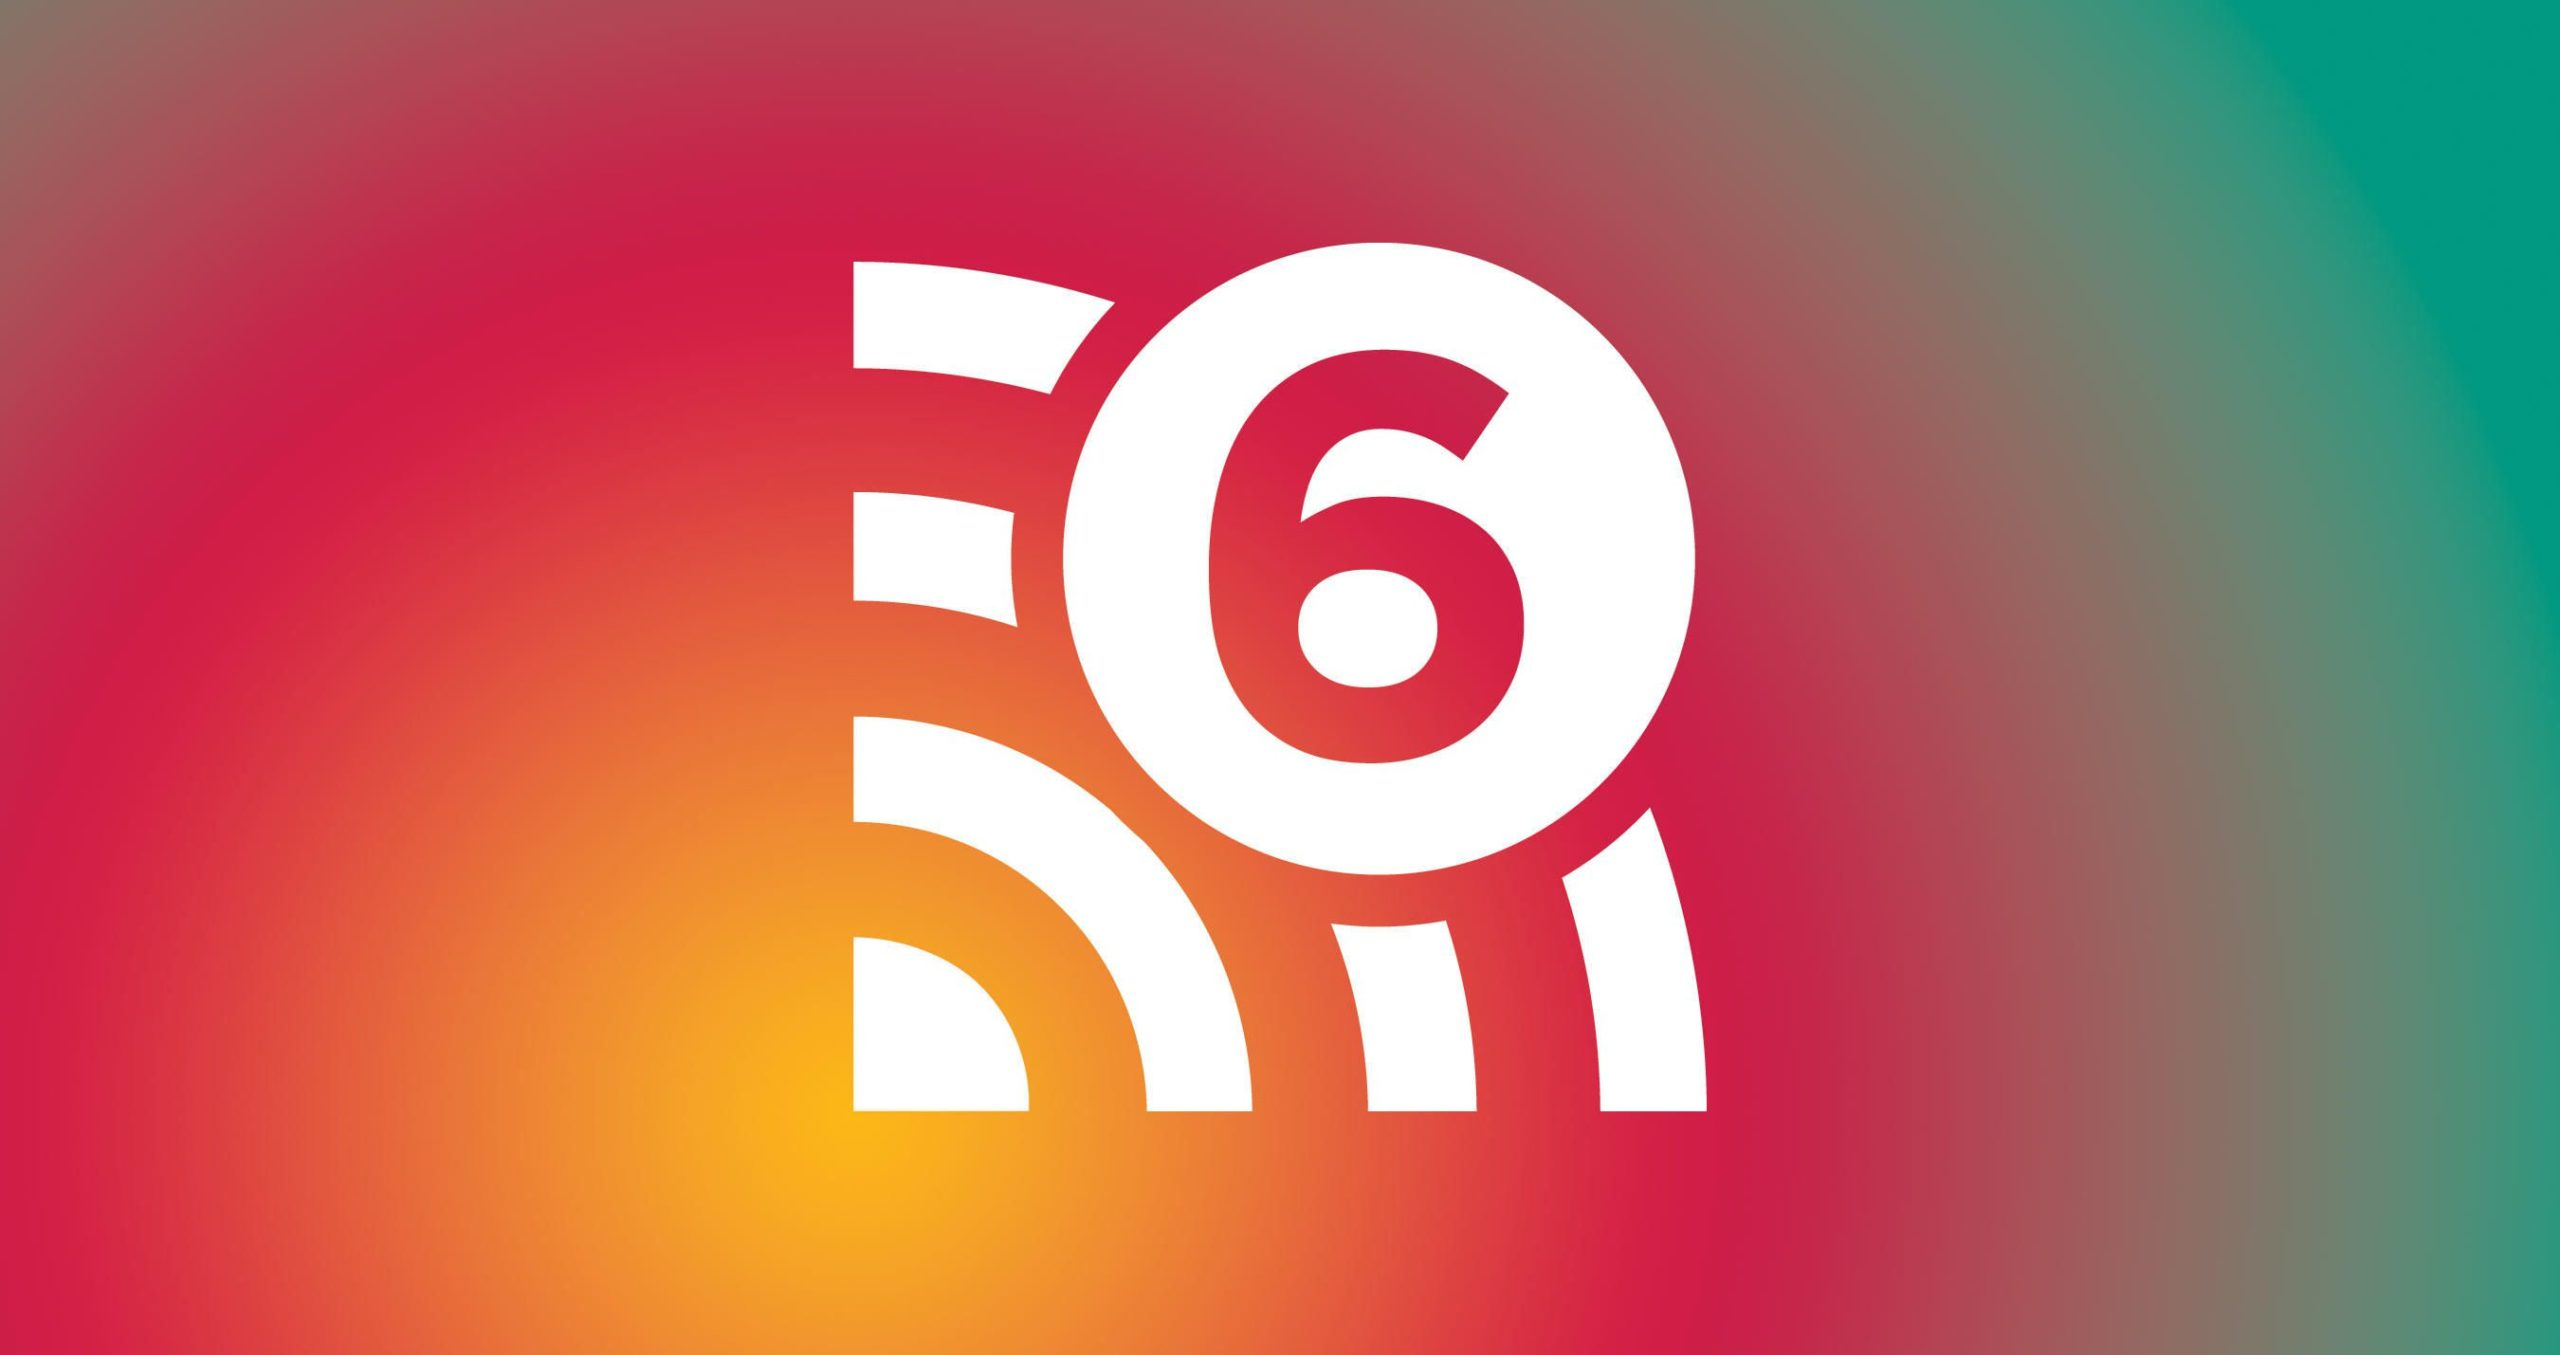 Wi-Fi 6 is the fastest standard yet. Wi-Fi 6E will be even better